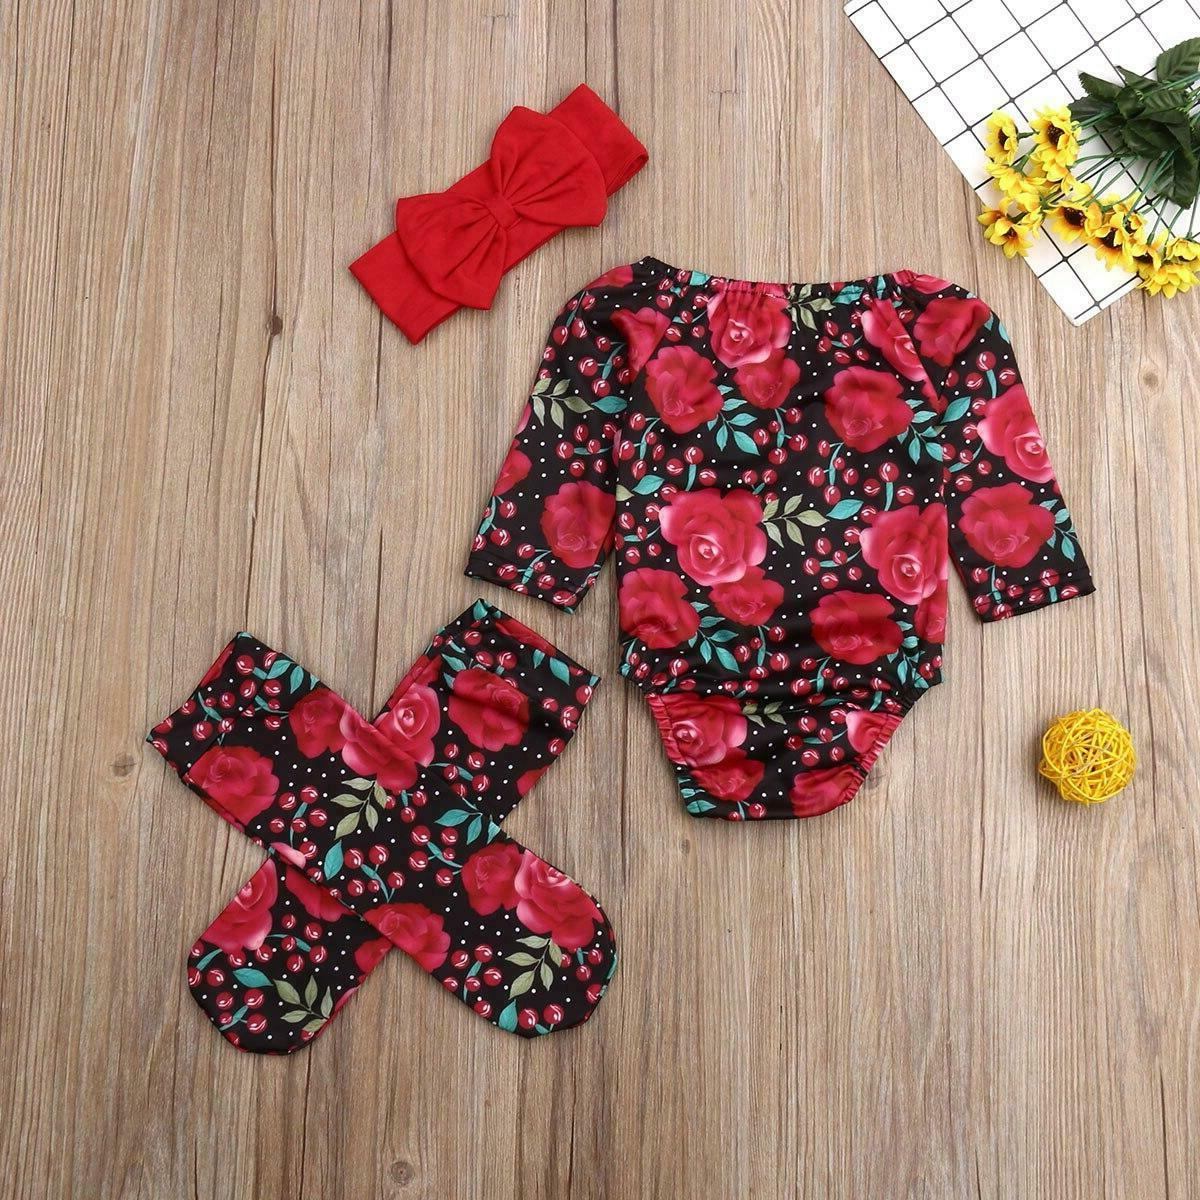 New Baby Girl Romper Bodysuit Outfits Clothes